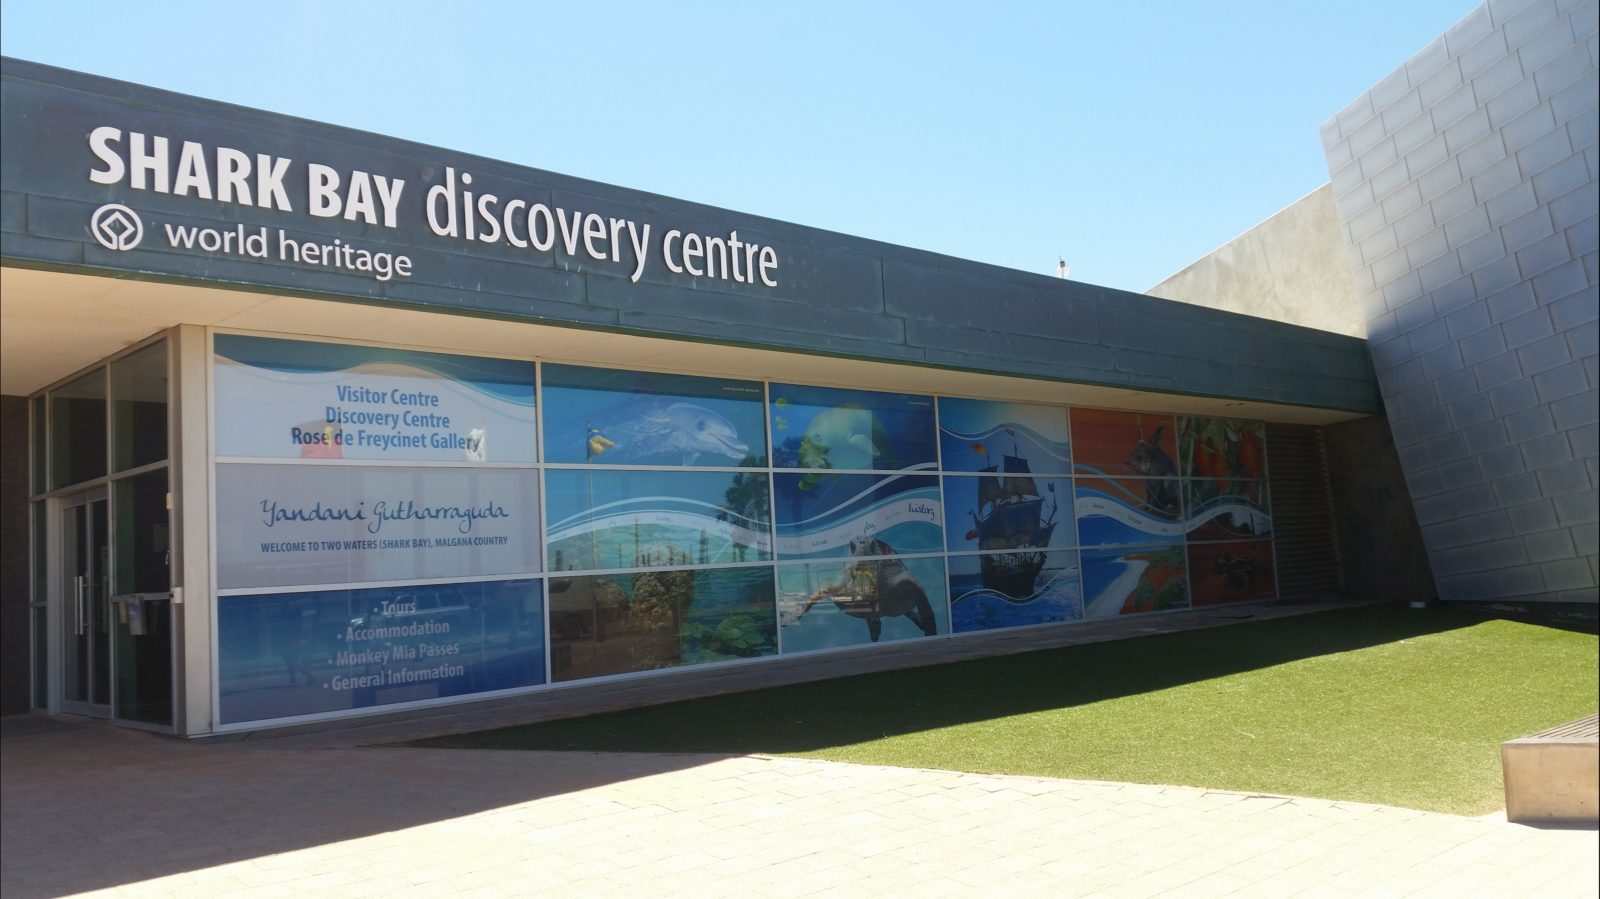 Shark Bay World Heritage Discovery and Visitor Centre, Denham, Western Australia